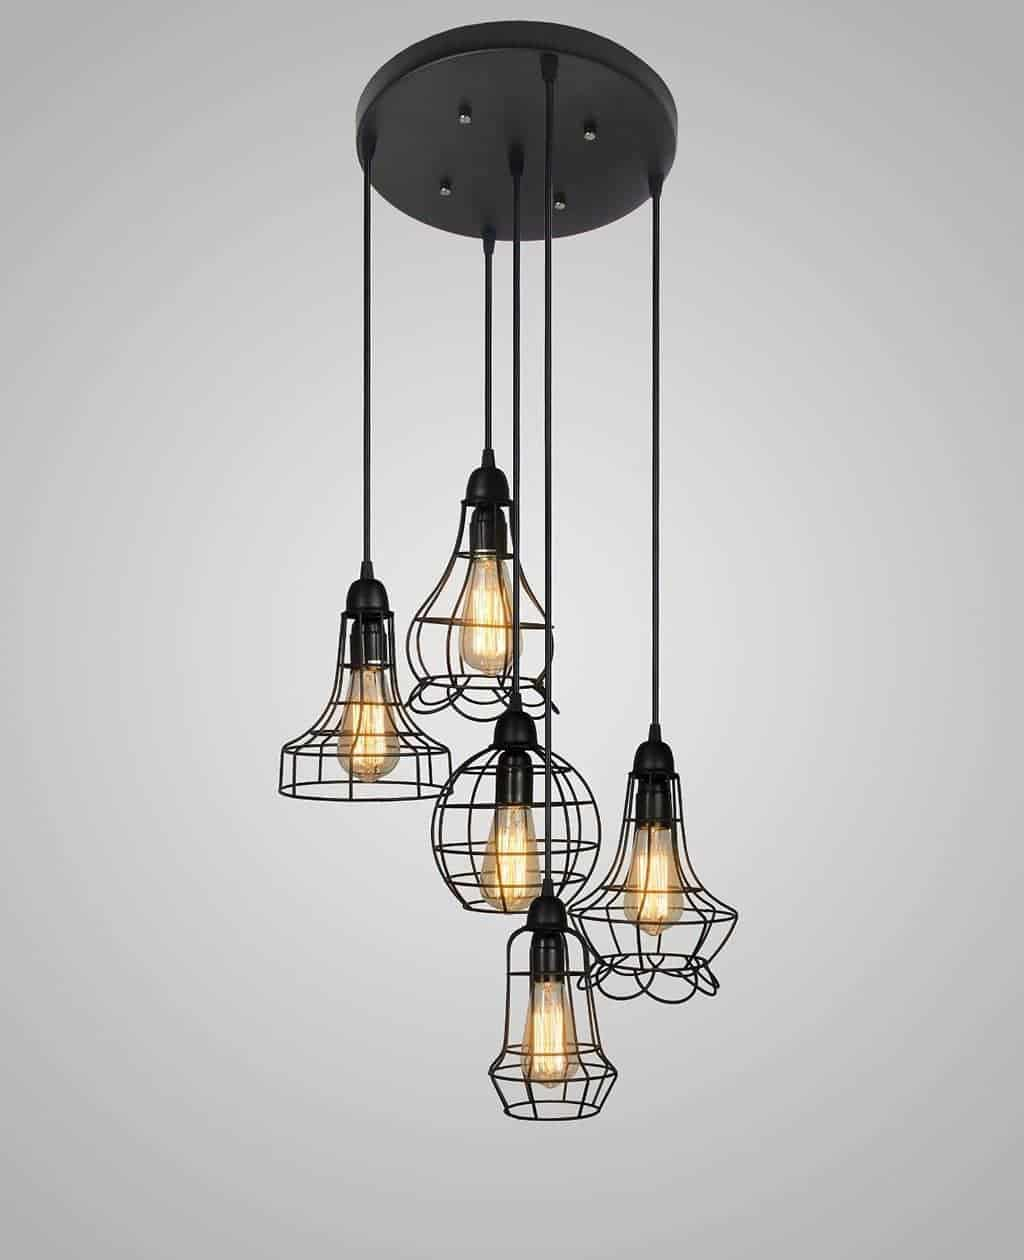 Vintage, Farmhouse and Industrial Style Lighting by Just the Woods